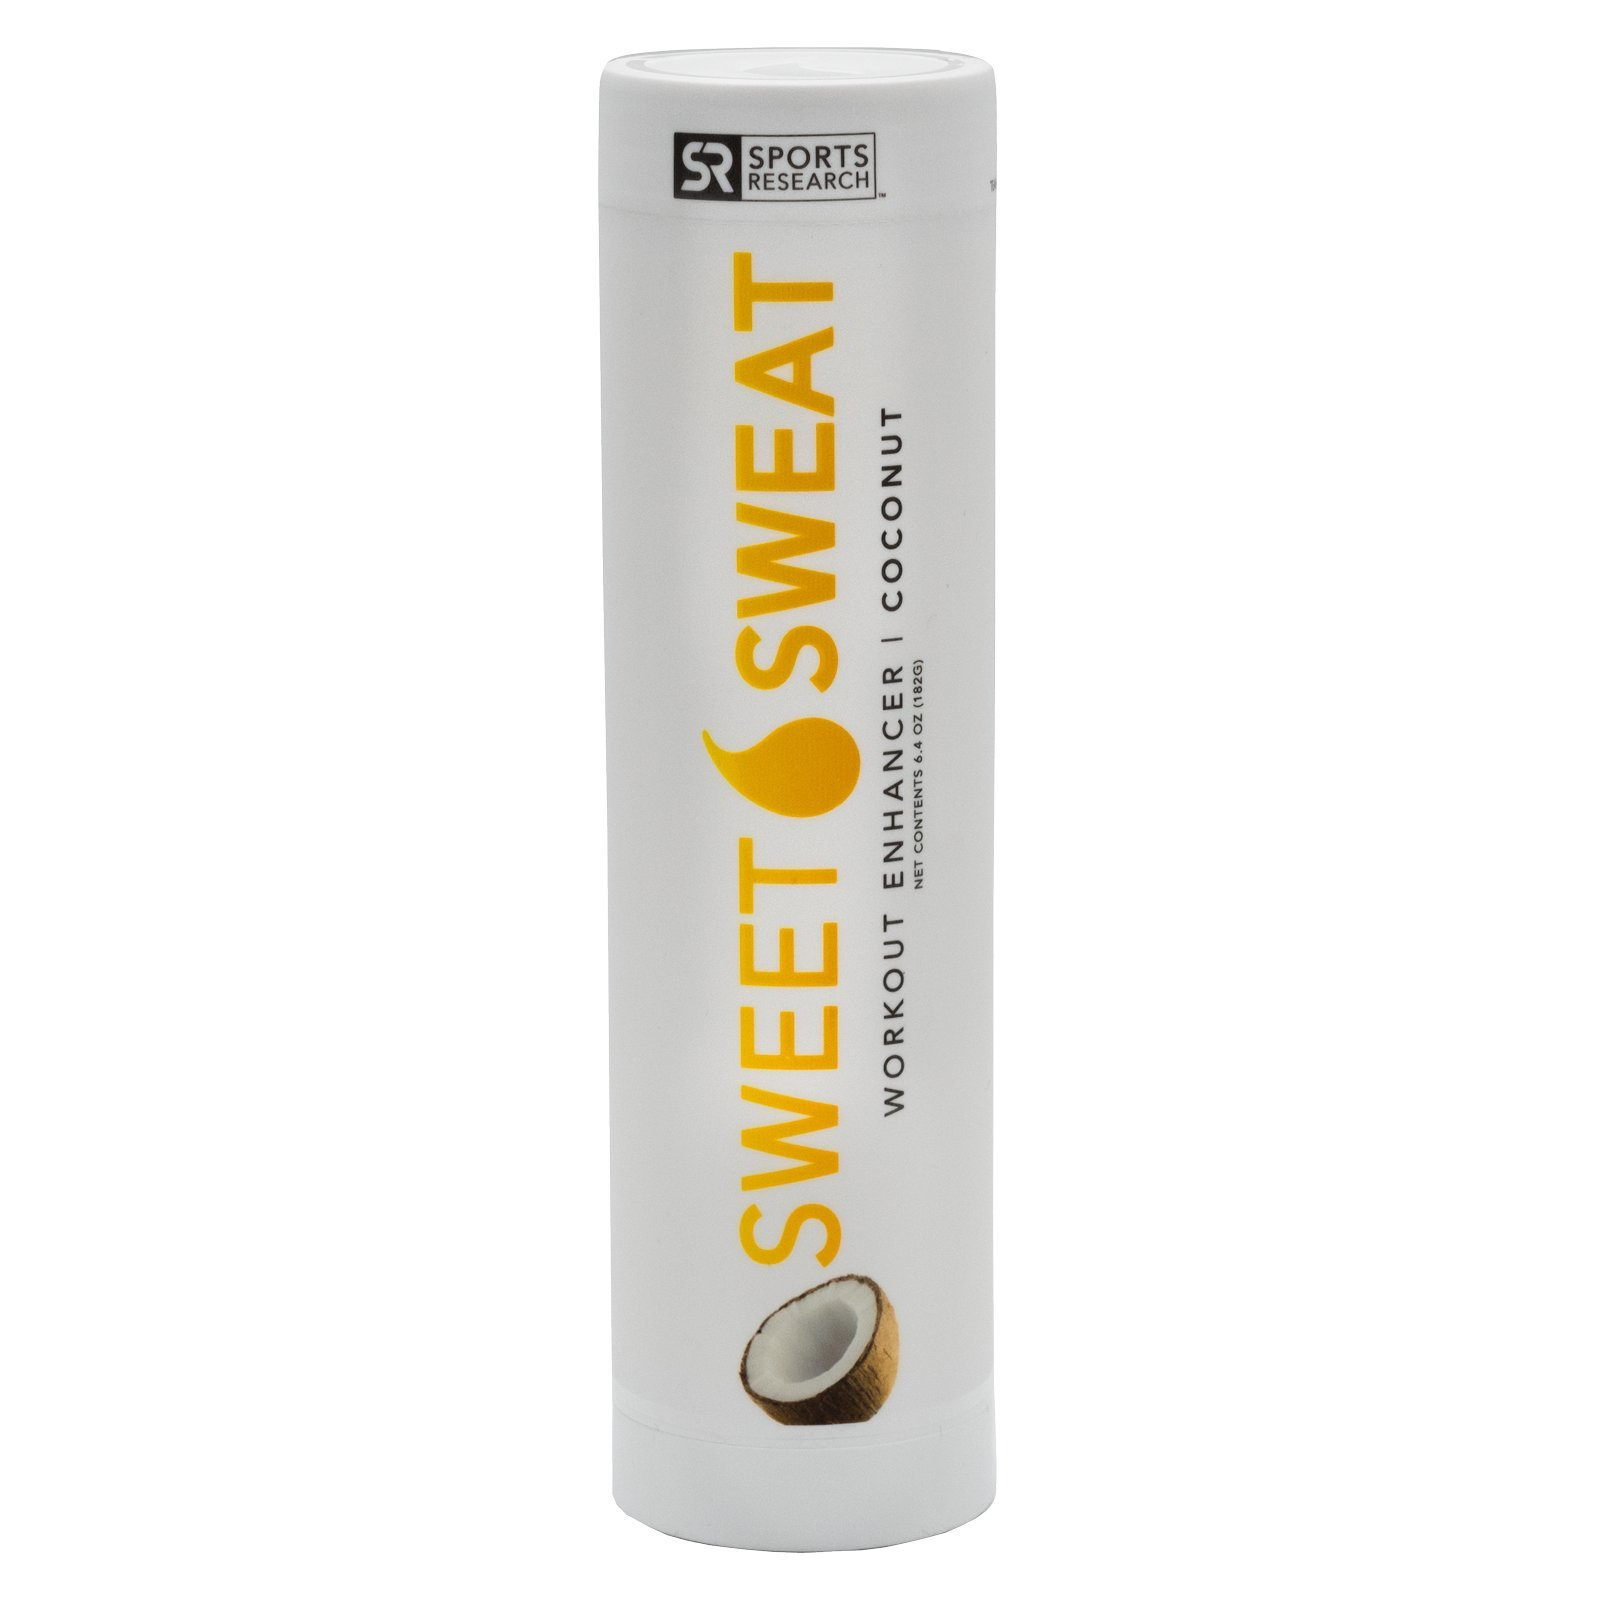 NEW: Sweet Sweat Coconut Stick - 6.4oz   Helps increase circulation, sweating and motivation during exercise   Made in the USA